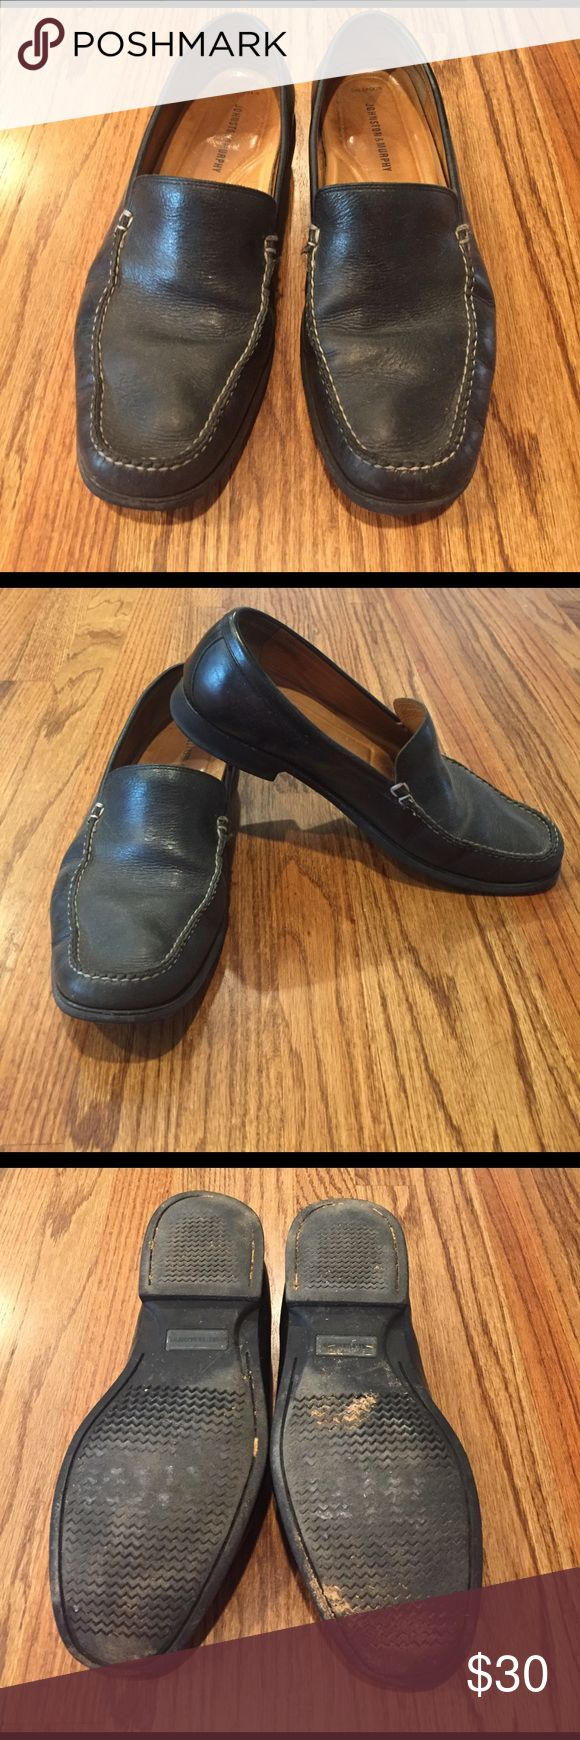 Johnston & Murphy black leather loafer Gently worn.  Black leather and stitching detail.  Slip on style. Johnston & Murphy Shoes Loafers & Slip-Ons